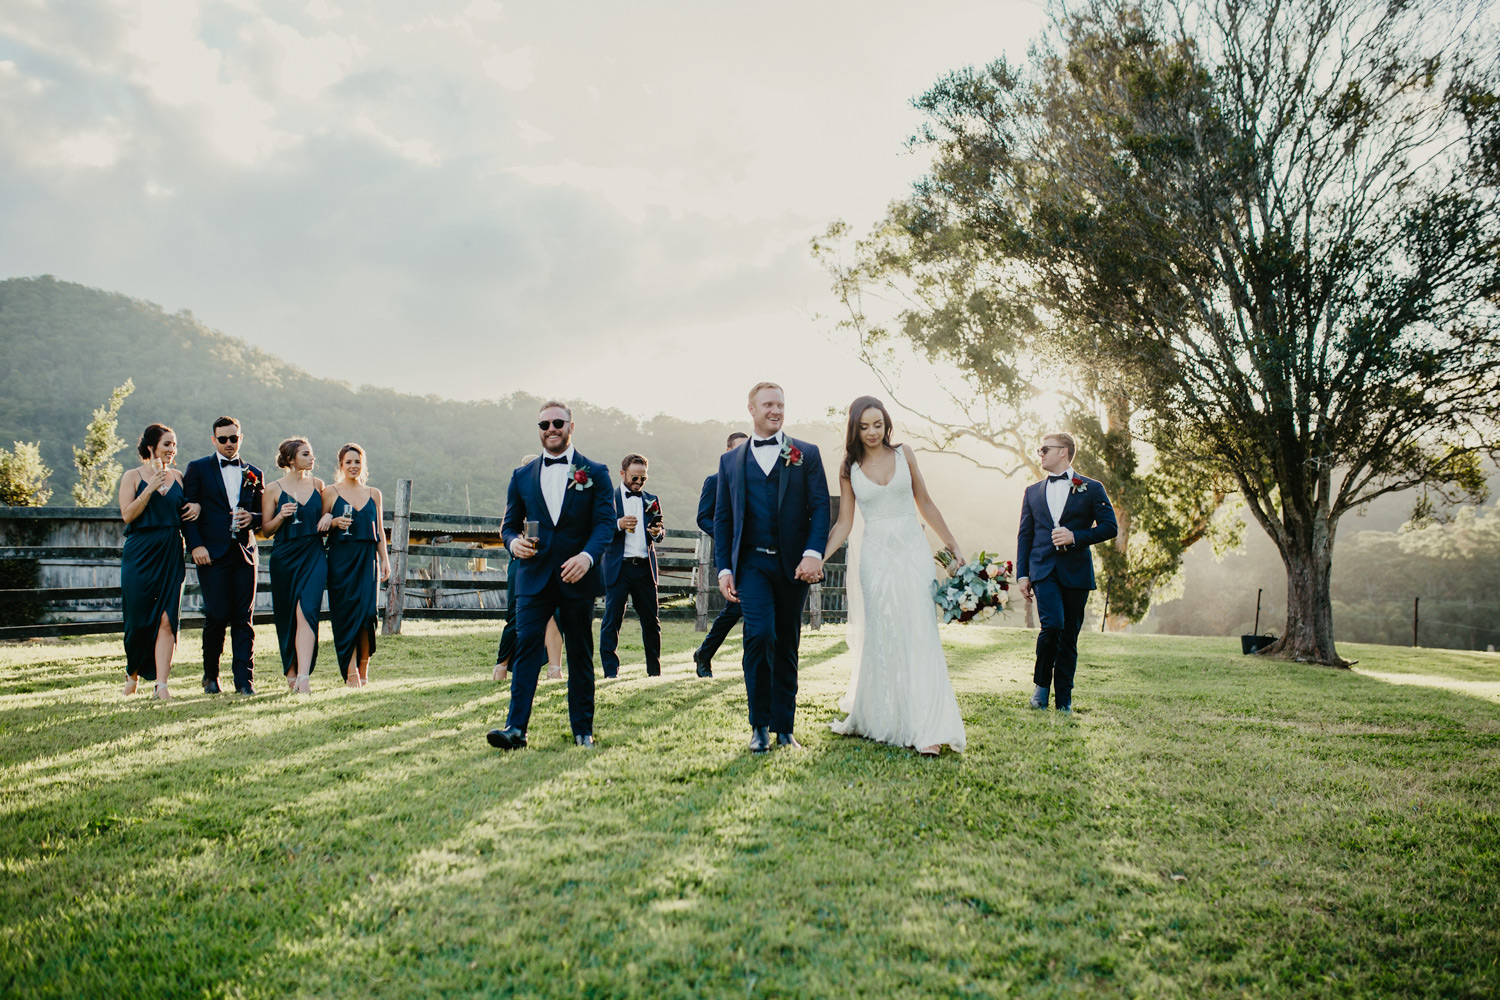 True-North-Photography-Cowbell-Creek-Bridal-party-golden-hour.jpg